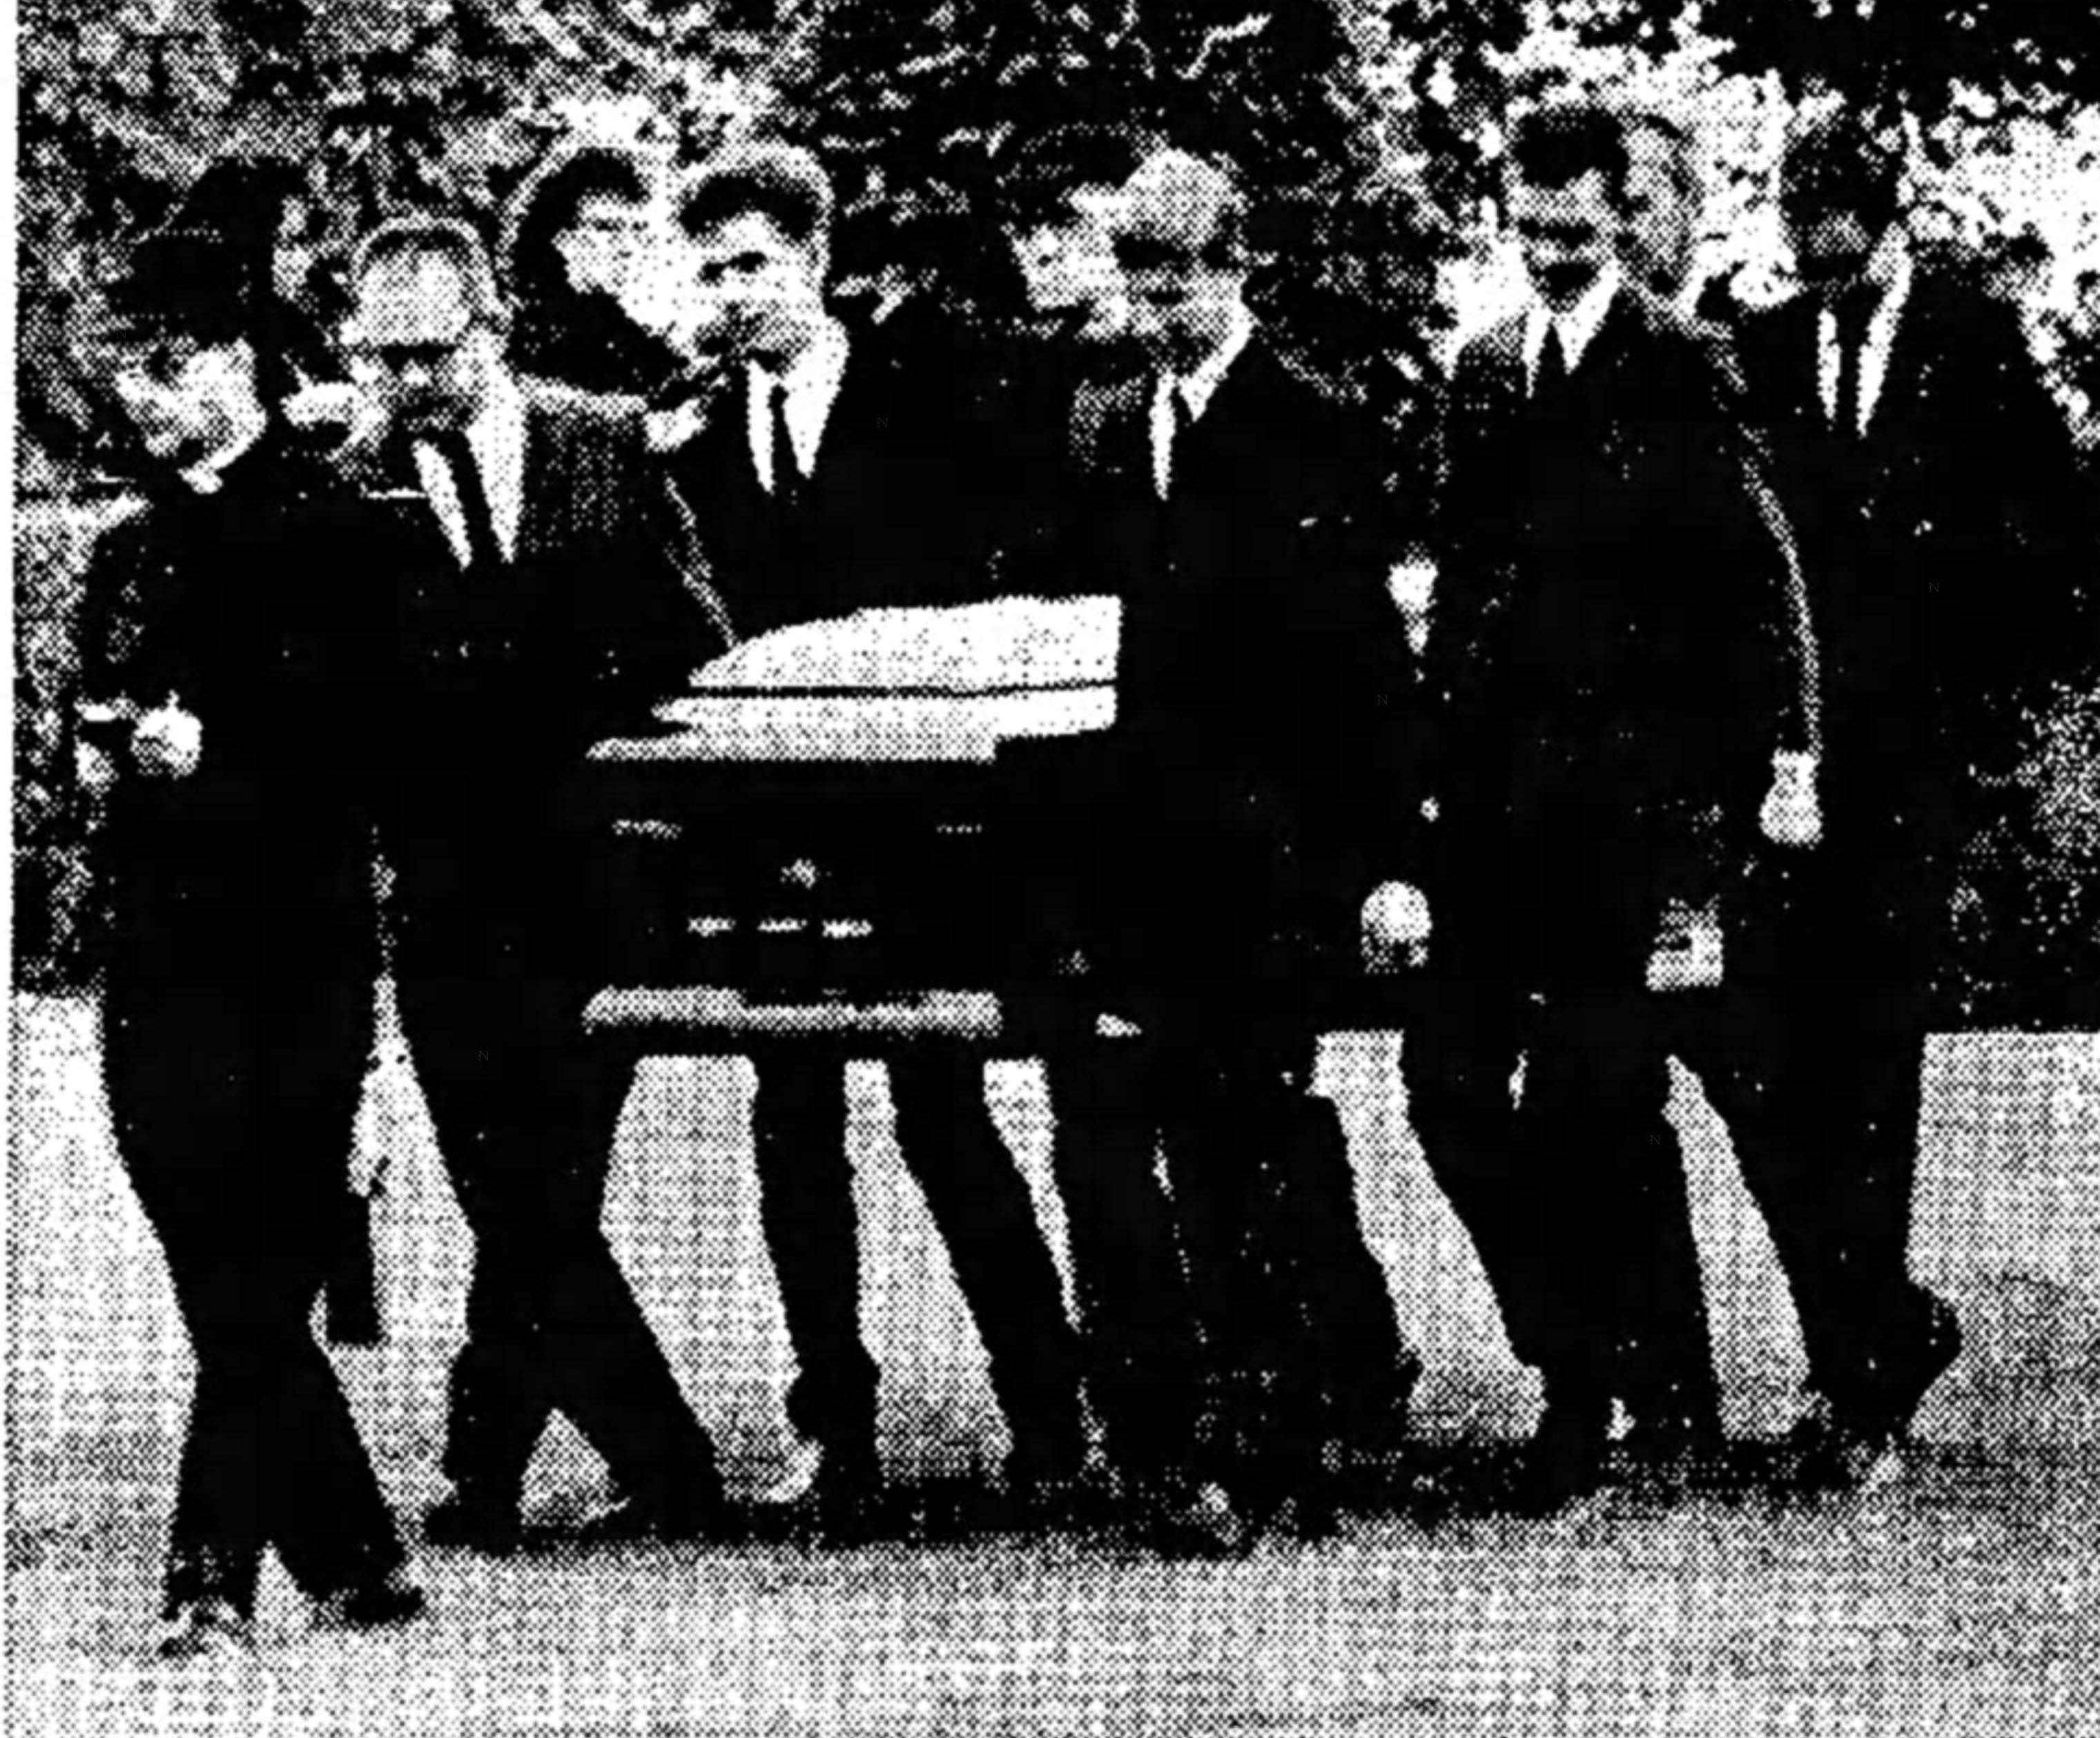 Mourners carry Peggy Reber's casket to its gravesite at Grand View Memorial Park during a funeral service on May 29, 1968.